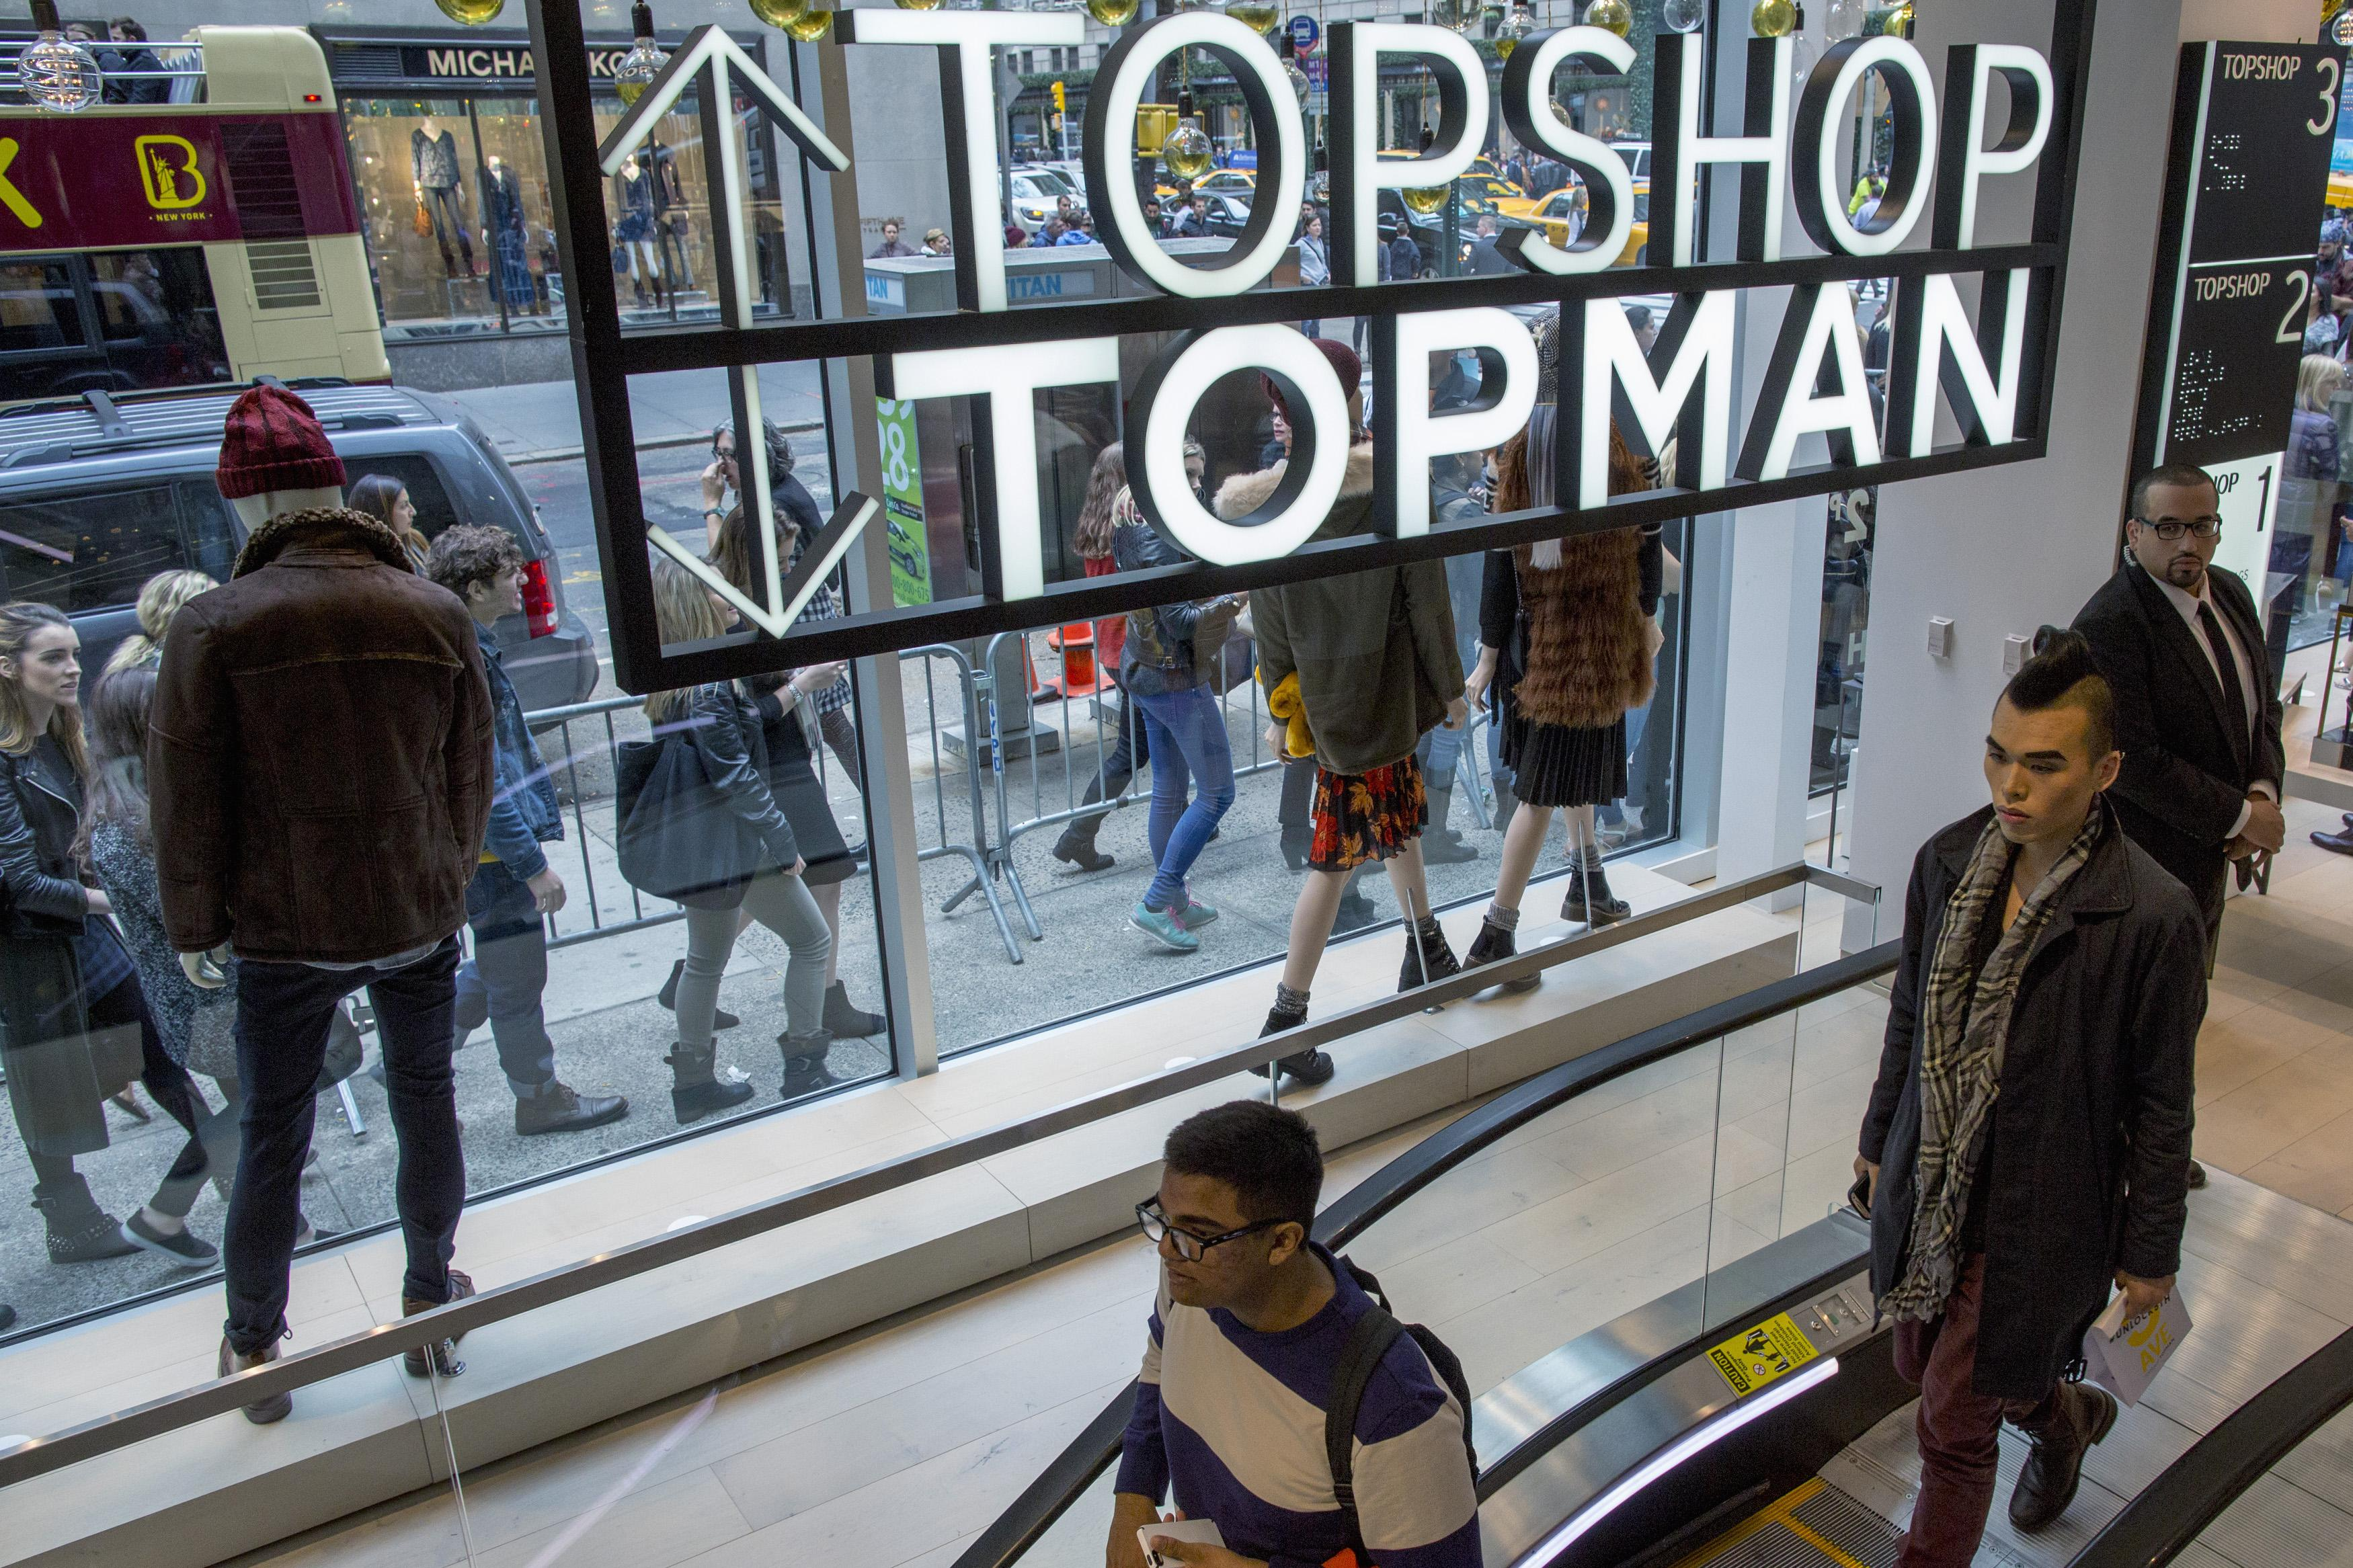 Philip Green's Arcadia to close UK stores, review U.S. in restructuring